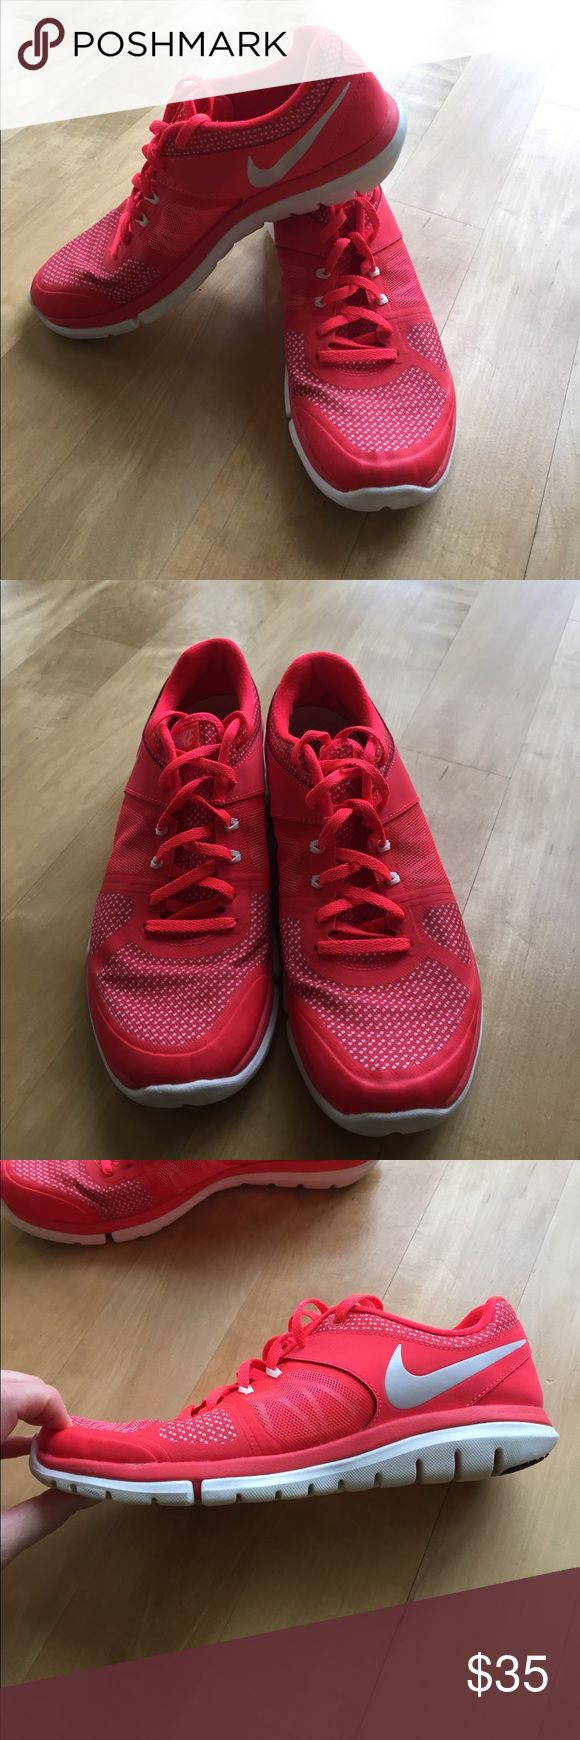 Red Nike Flex shoes Red Nike Flex shoes. In excellent condition. No stains or flaws. COMES WITH BOX Nike Shoes Athletic Shoes